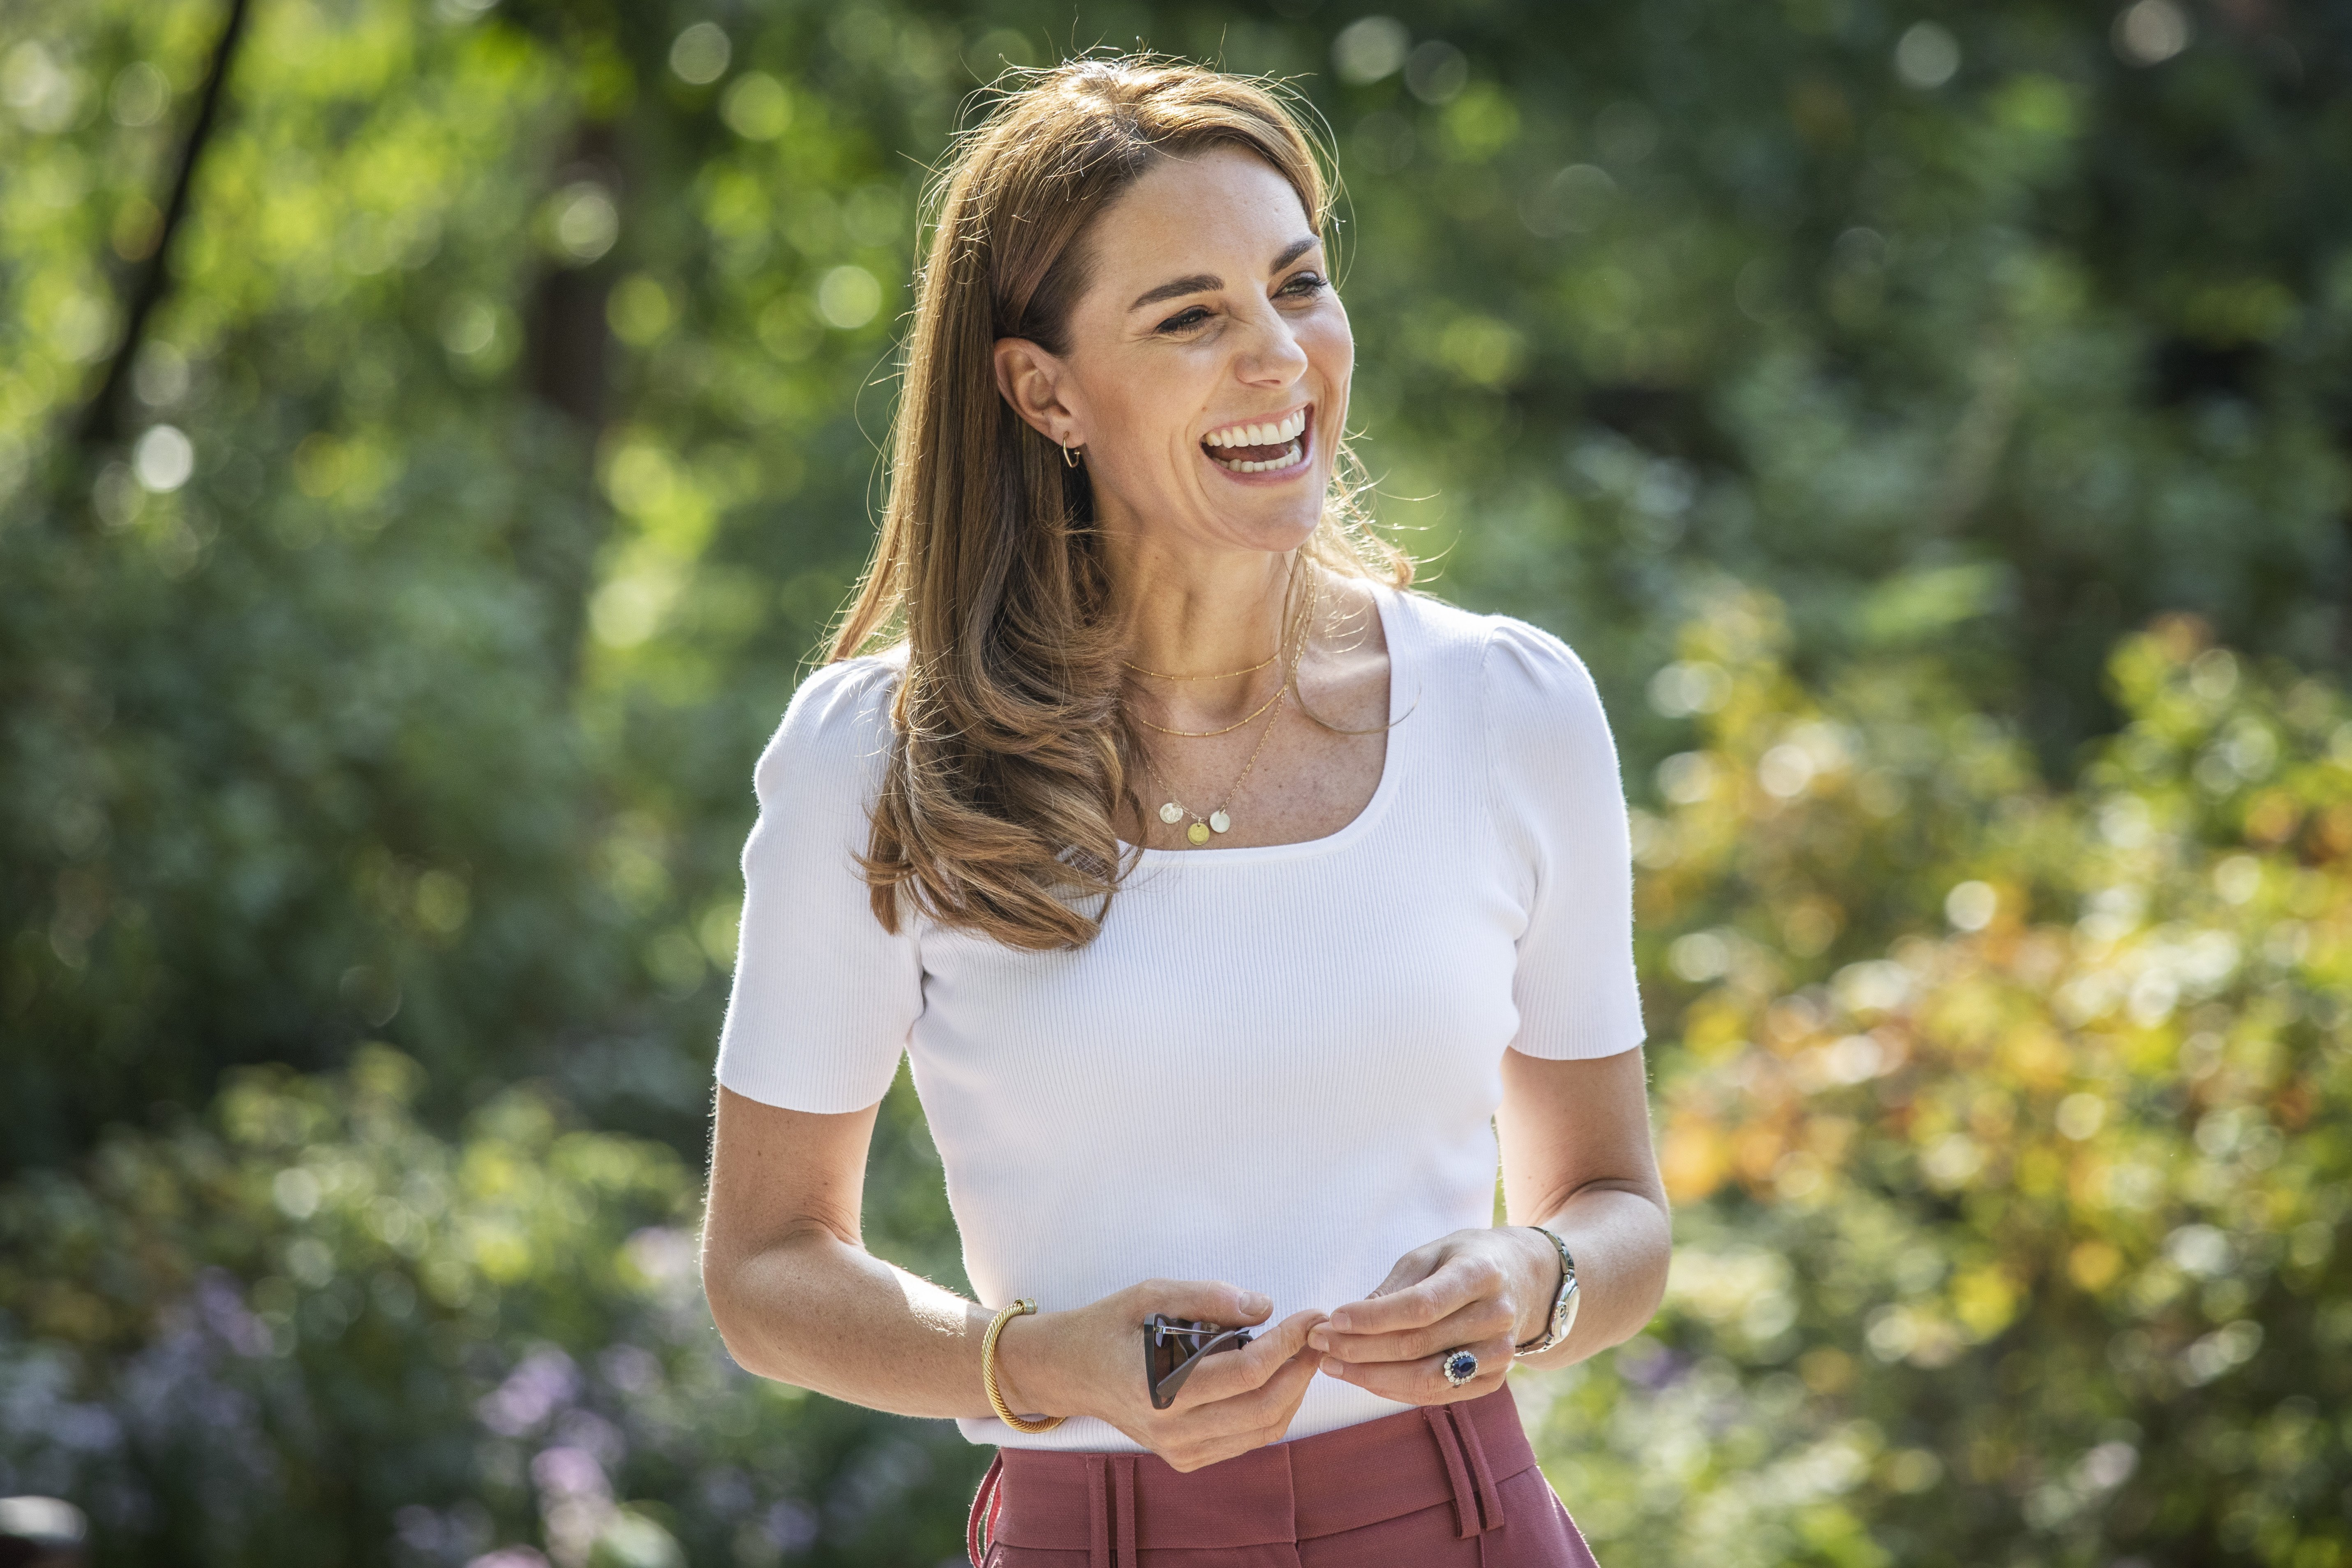 Kate Middleton discusses parent wellbeing during a visit to Battersea Park in London, England on September 22, 2020 | Photo: Getty Images